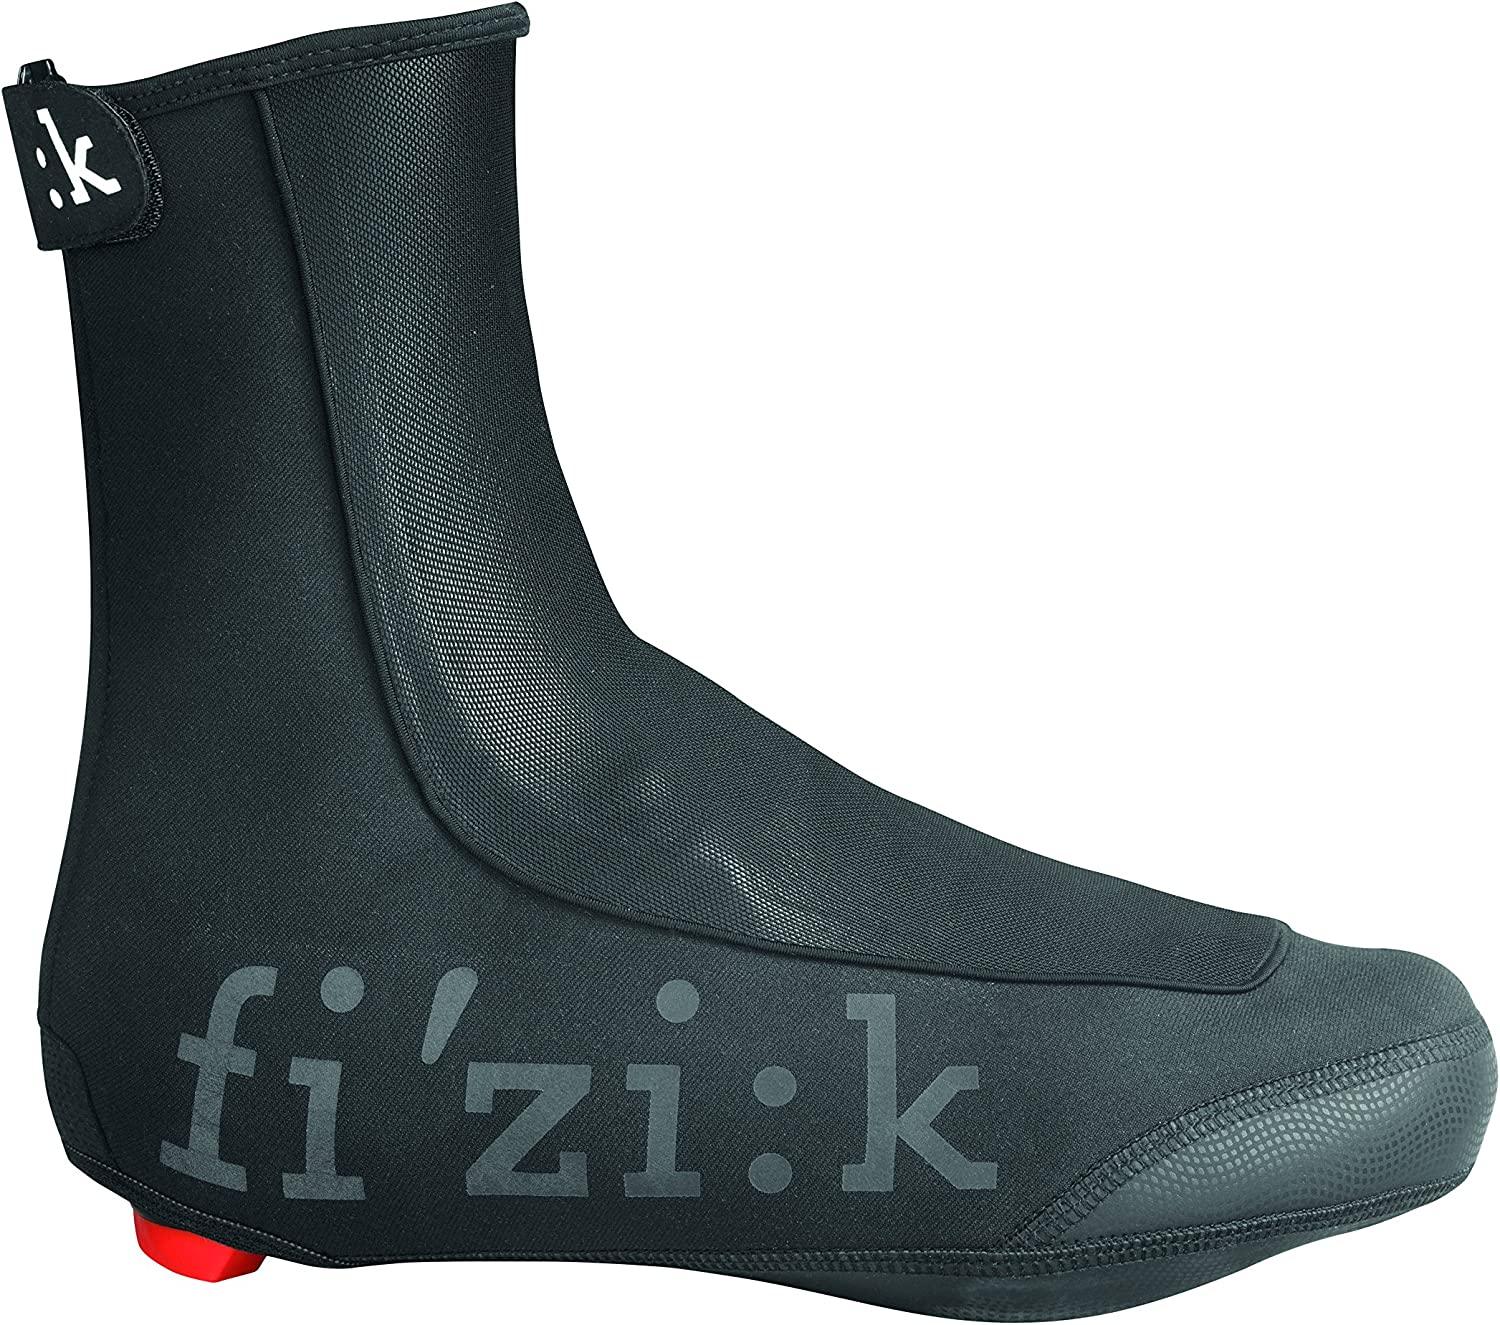 Fizik Winter Shoe Covers 91NC01cIIjL